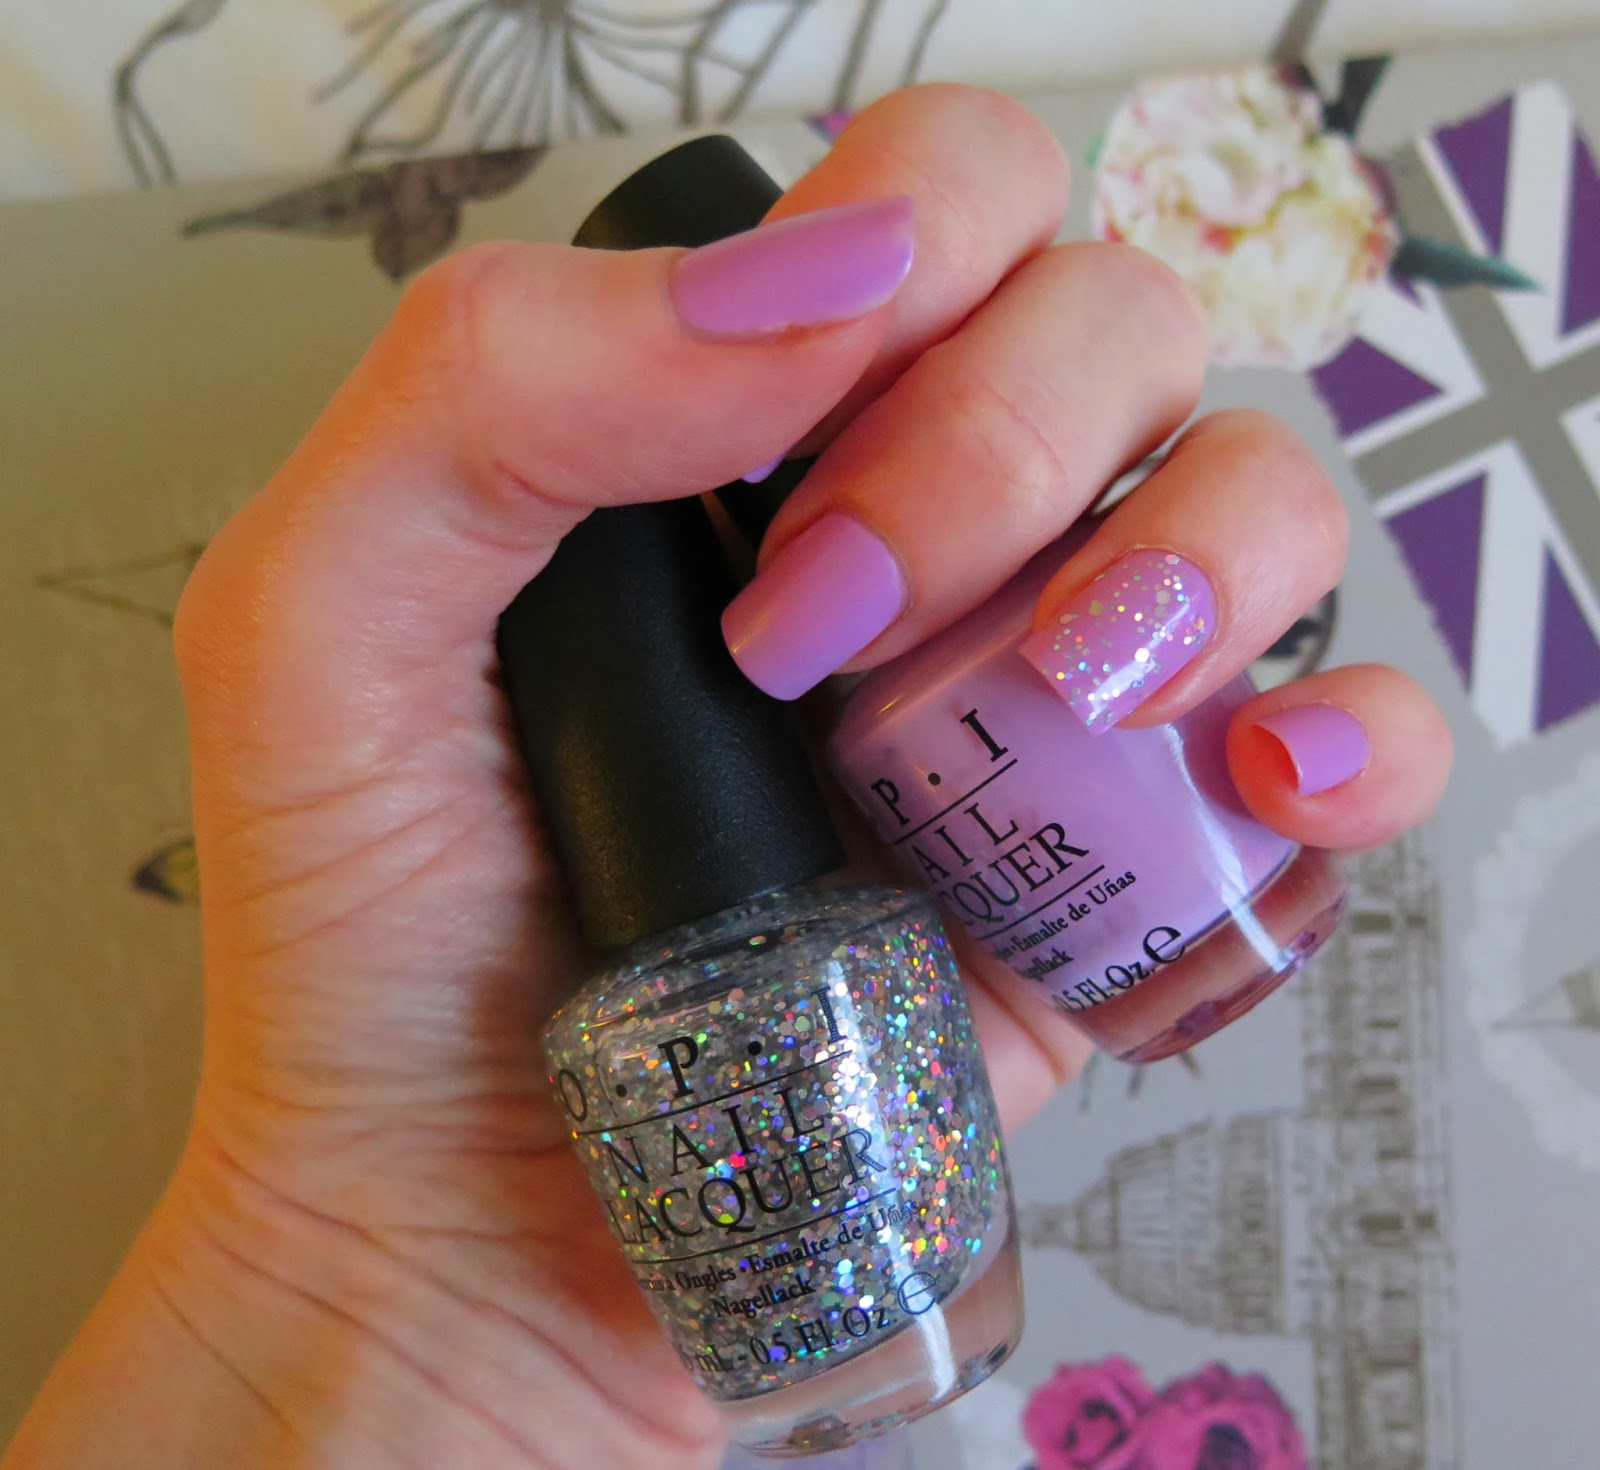 OPI snowflakes in the air, lucky lucky lavender